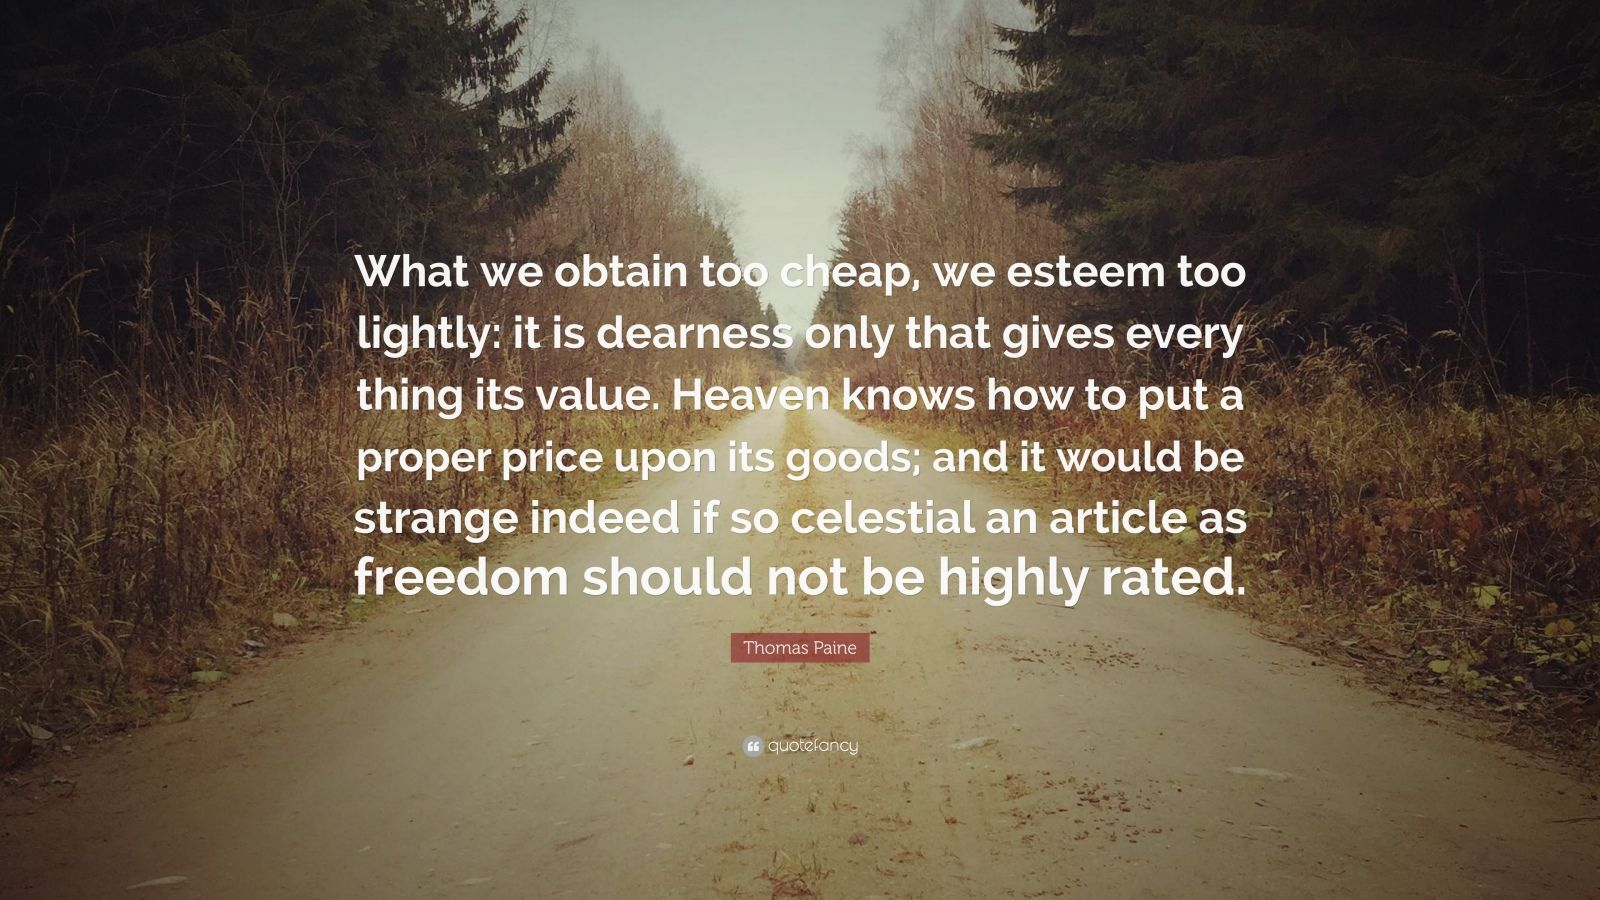 "Thomas Paine Quote: ""What we obtain too cheap, we esteem too lightly: it is dearness only that gives every thing its value. Heaven knows how to put a proper price upon its goods; and it would be strange indeed if so celestial an article as freedom should not be highly rated."""